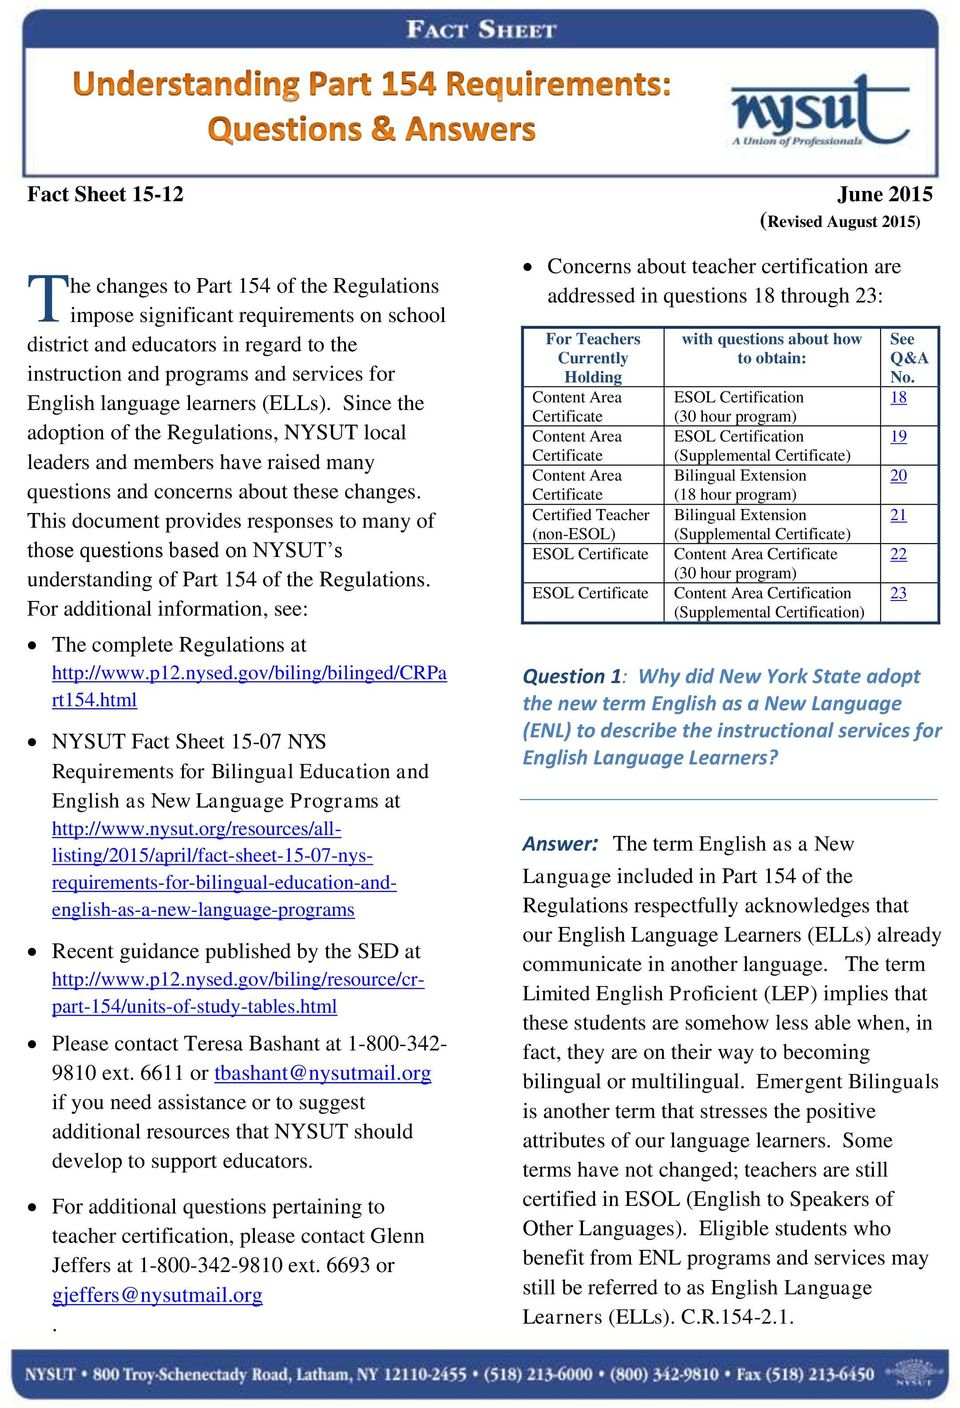 This document provides responses to many of those questions based on NYSUT s understanding of Part 154 of the Regulations. For additional information, see: The complete Regulations at http://www.p12.